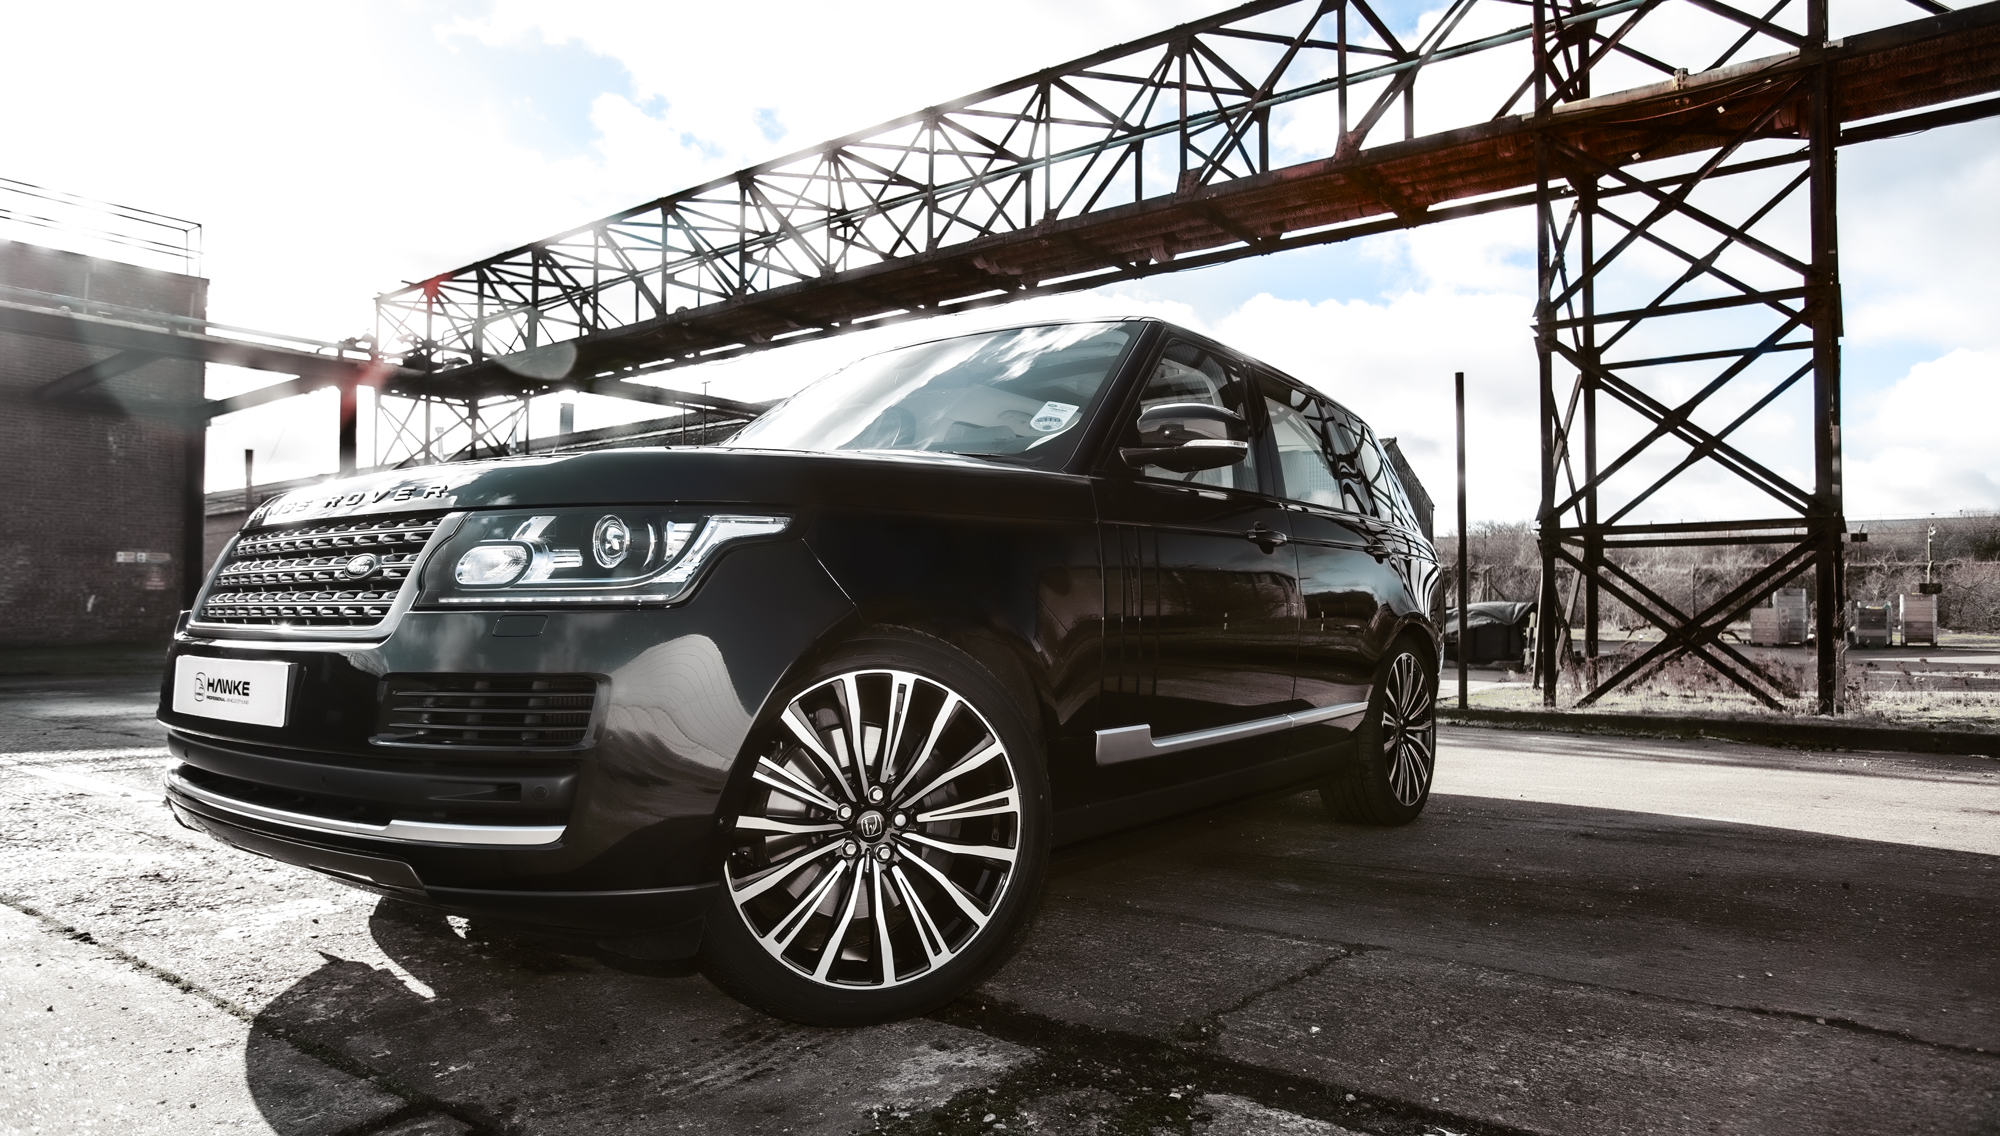 Black Range Rover Vogue on HAWKE Chayton wheels in Black Polished colour finish